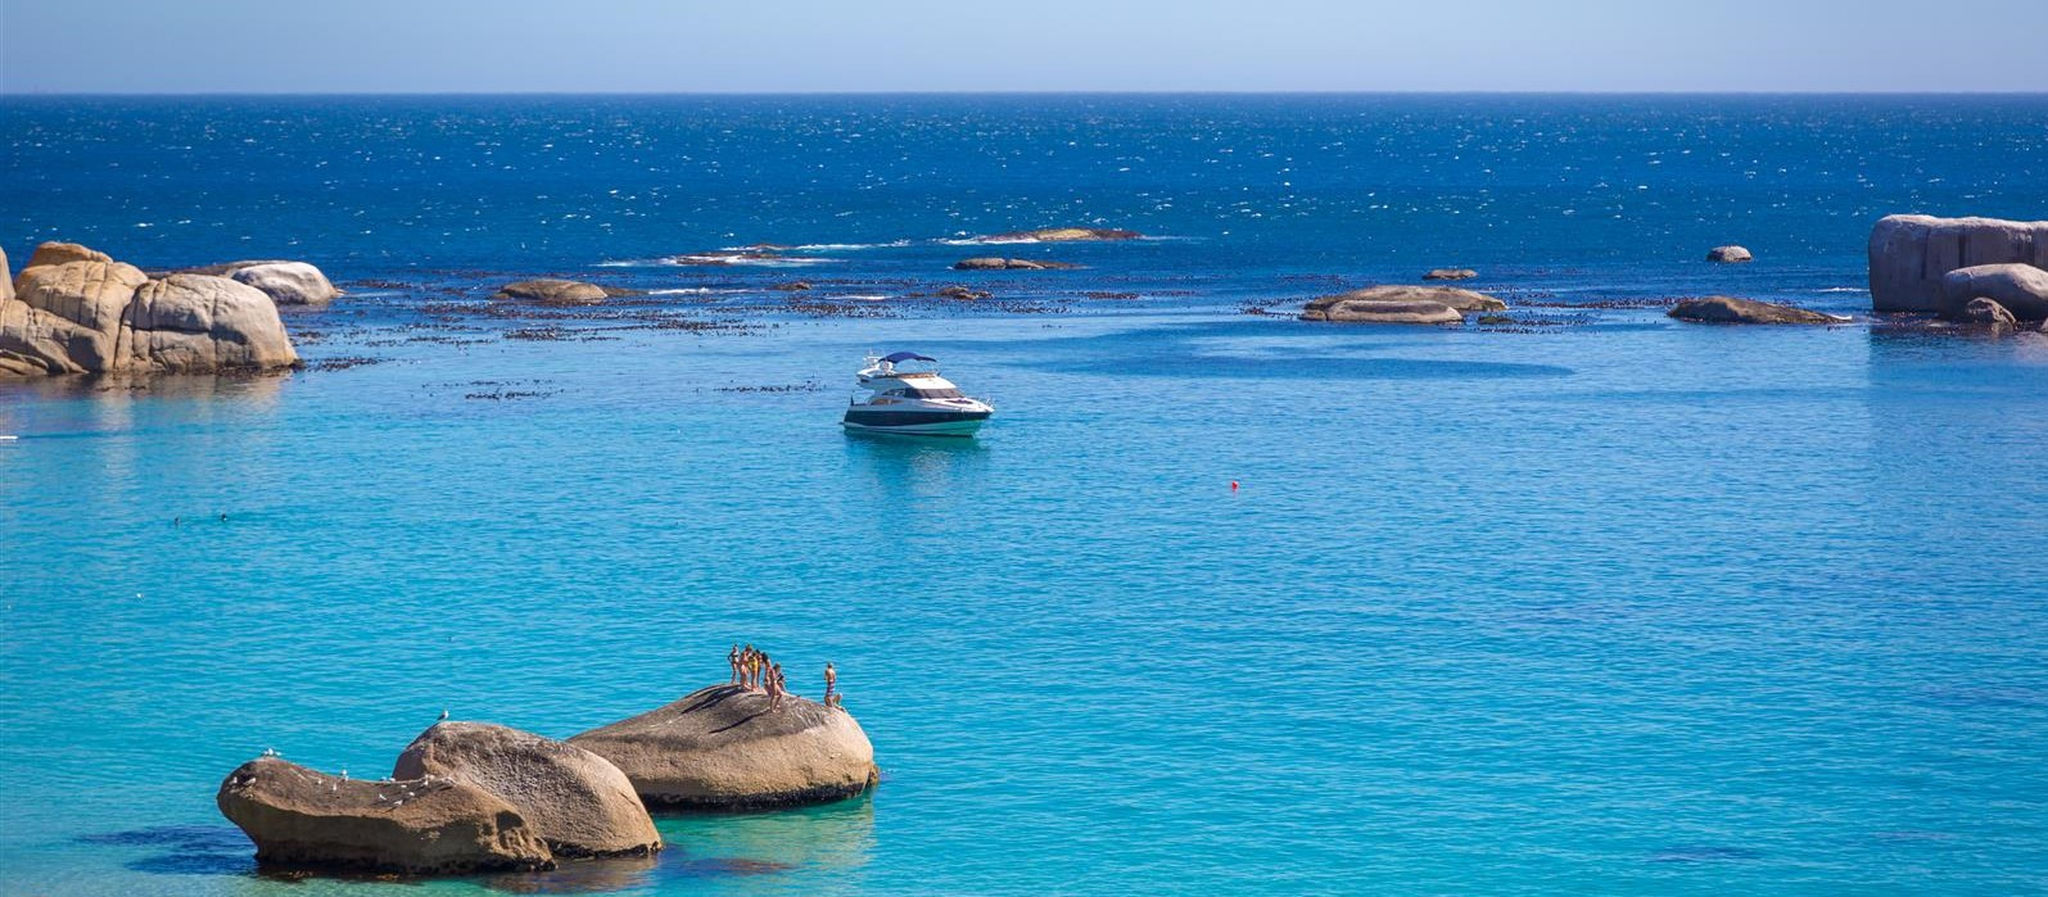 yacht-on-water-camps-bay-south-africa